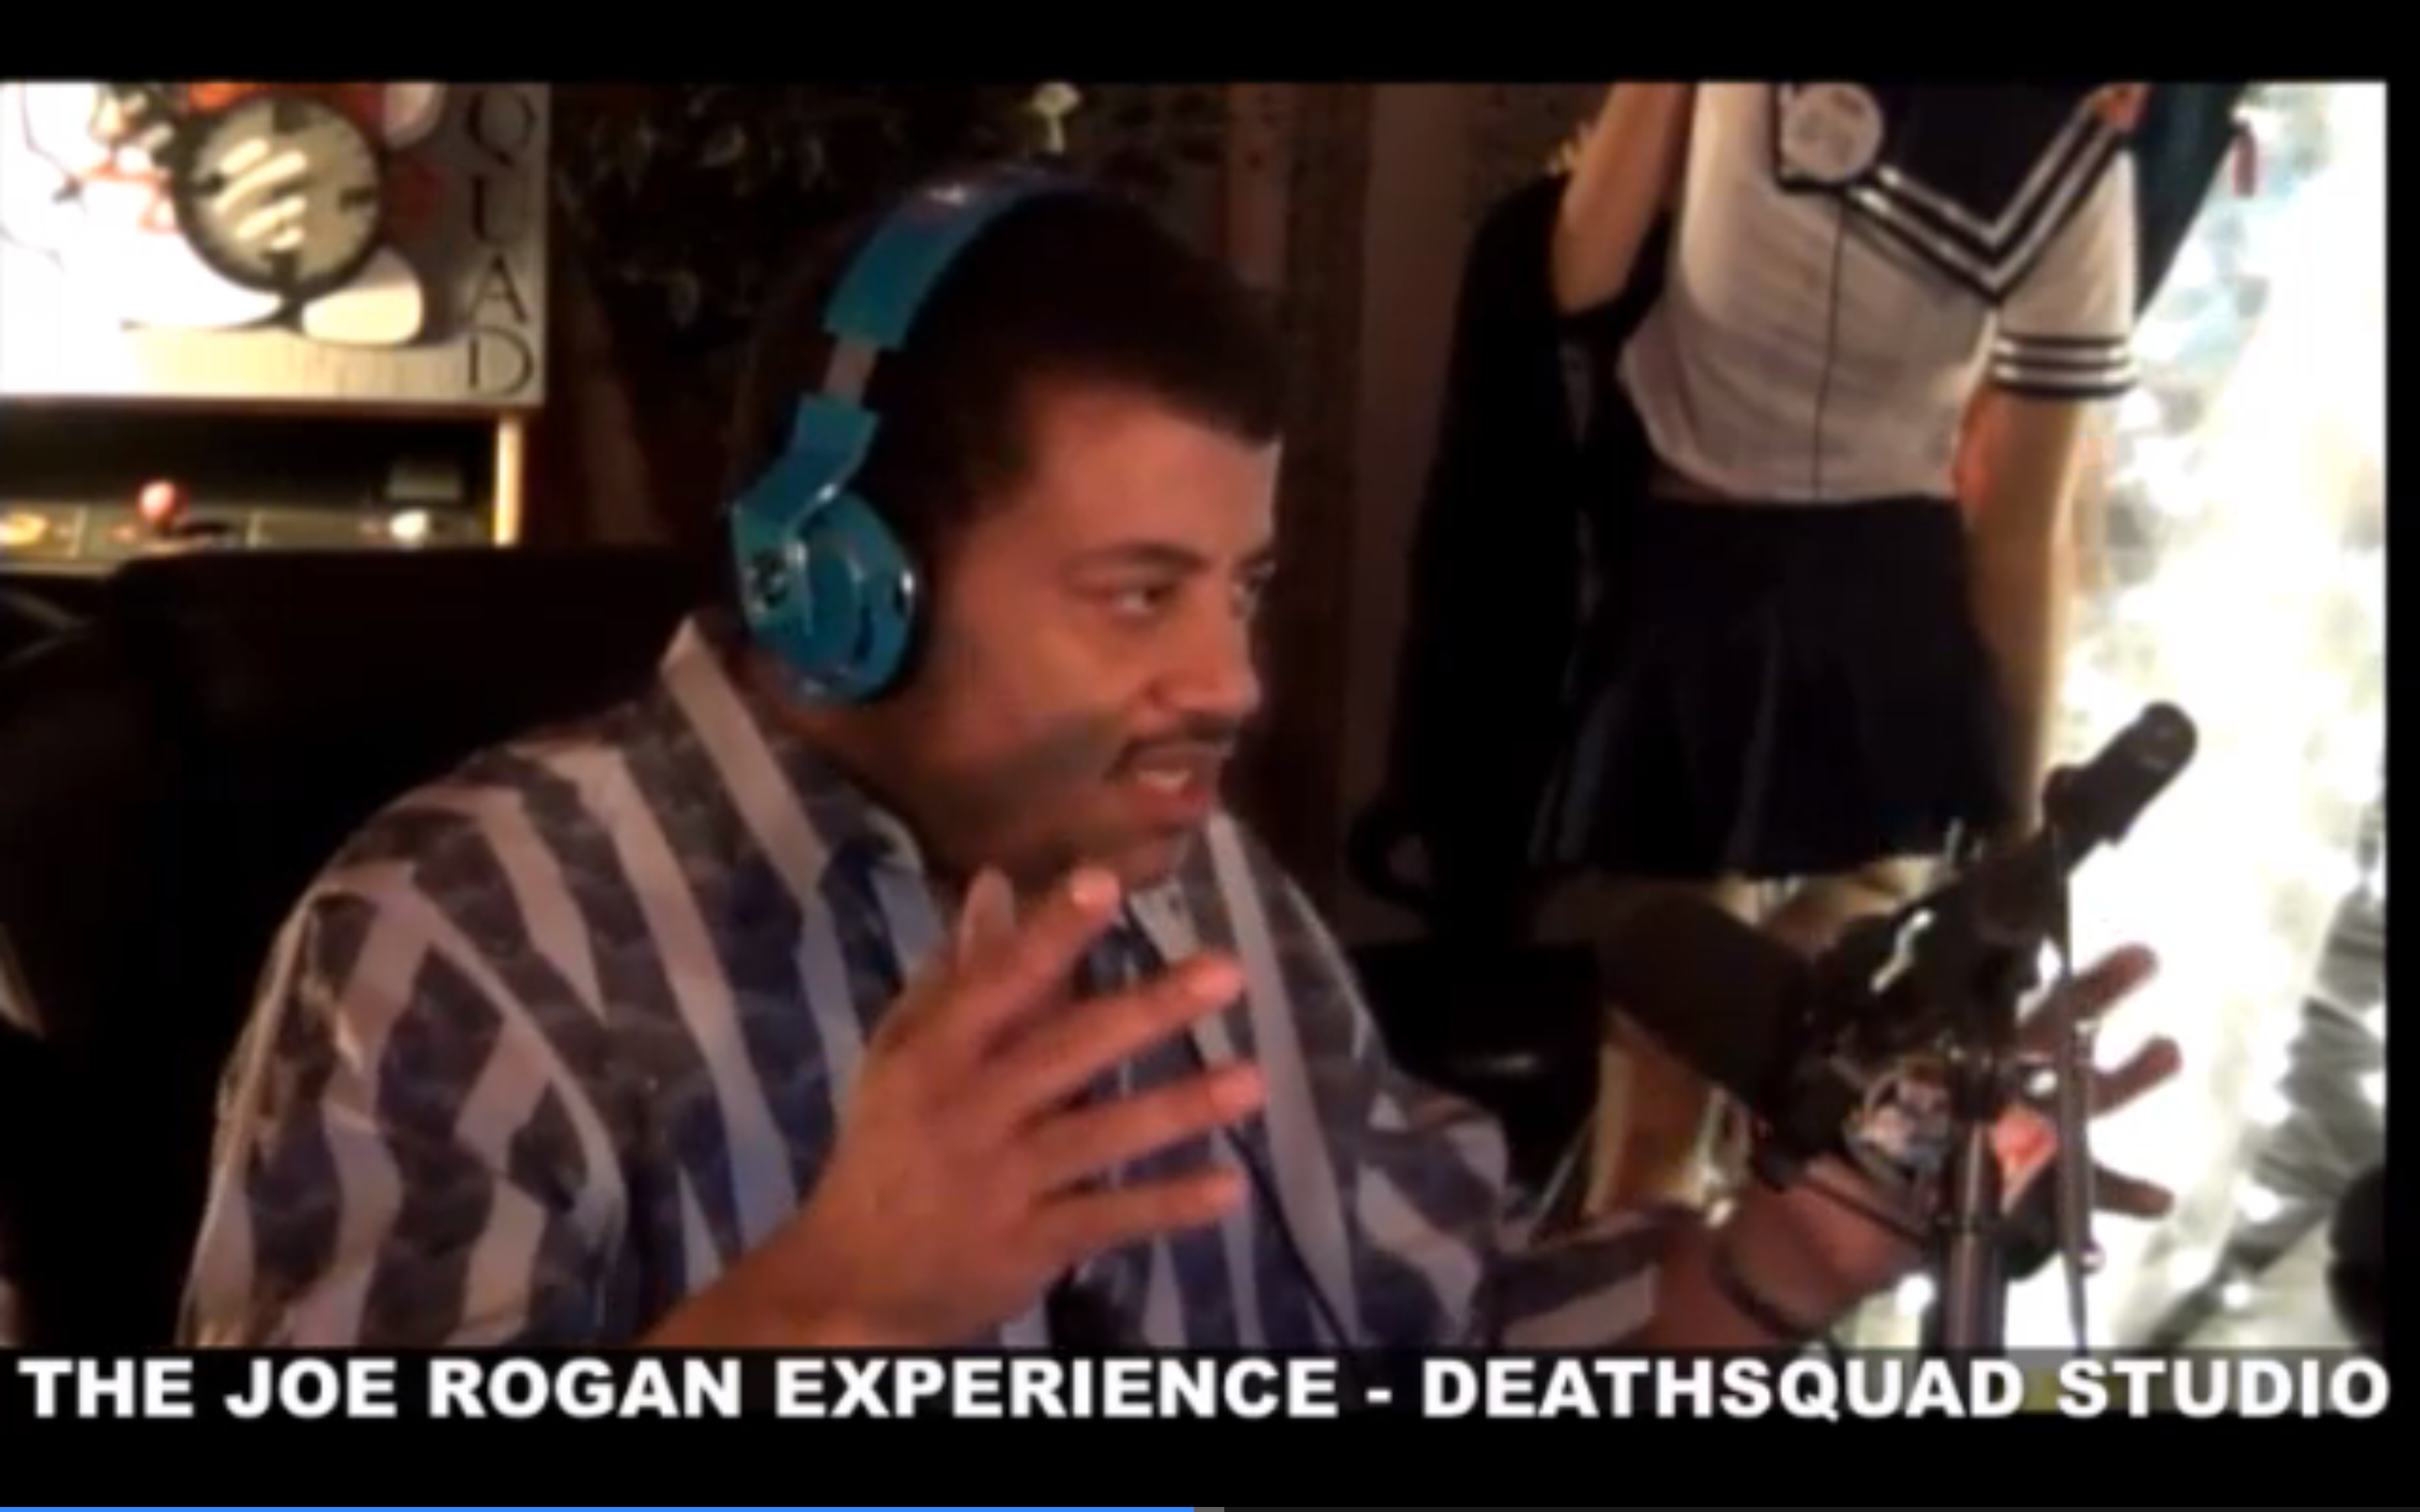 The Joe Rogan Experience #310 - Neil Degrasse Tyson, Brian Redban